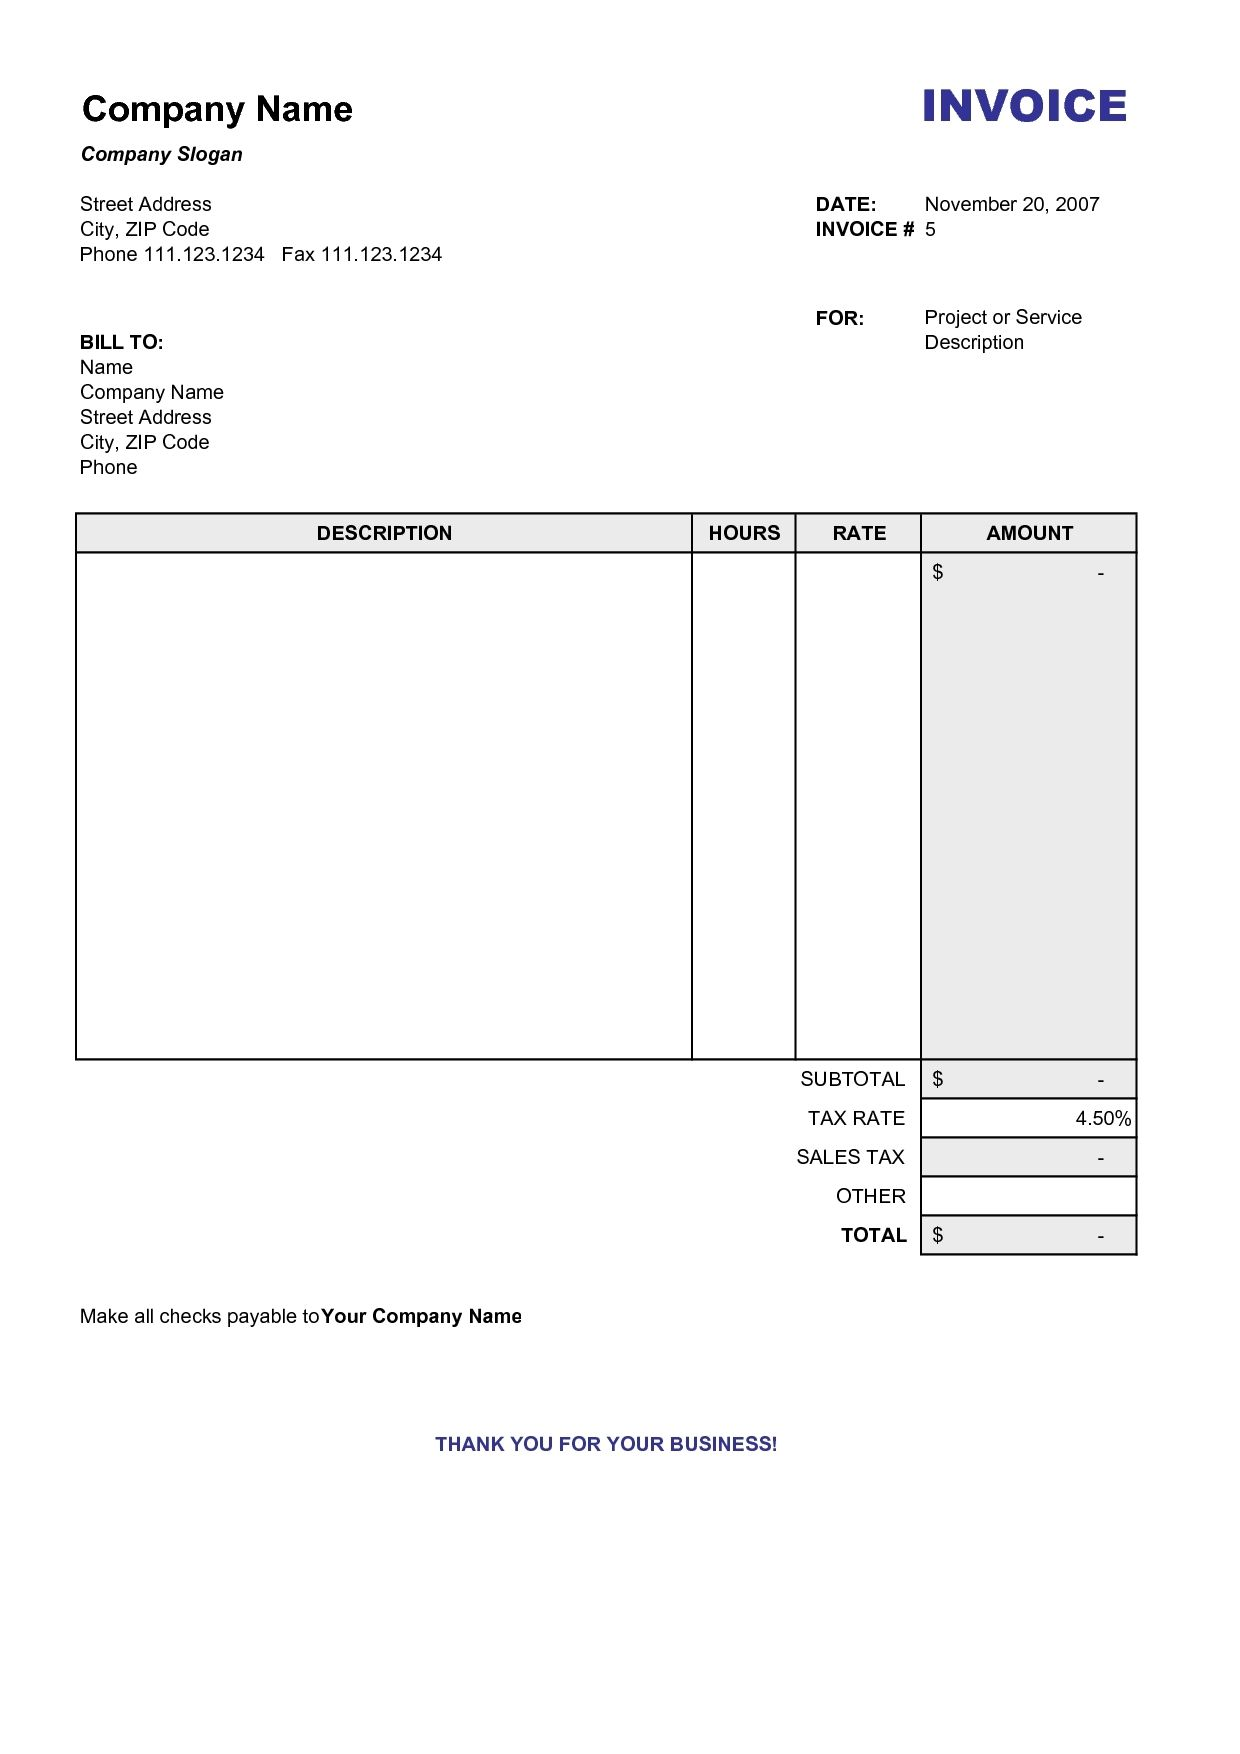 Copy Of A Blank Invoice Invoice Template Free Copy Of Blank - Generic invoice word